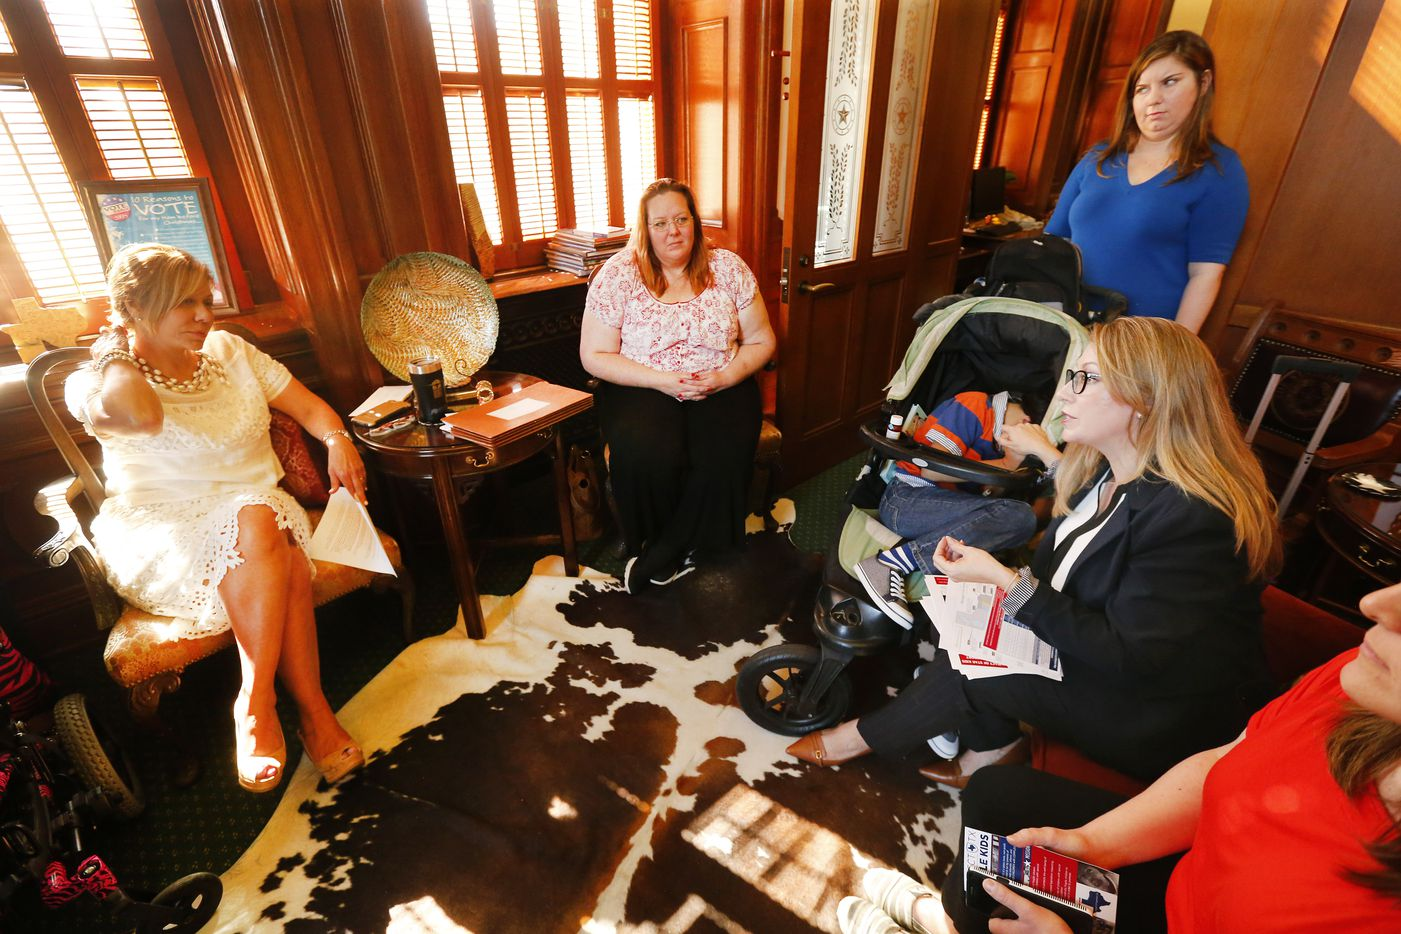 Republican state Sen. Joan Huffman (left) visits with mothers of medically fragile children including Cheevers, Mehta and Amber Marin (far right) of Sugar Land in her Capitol office.